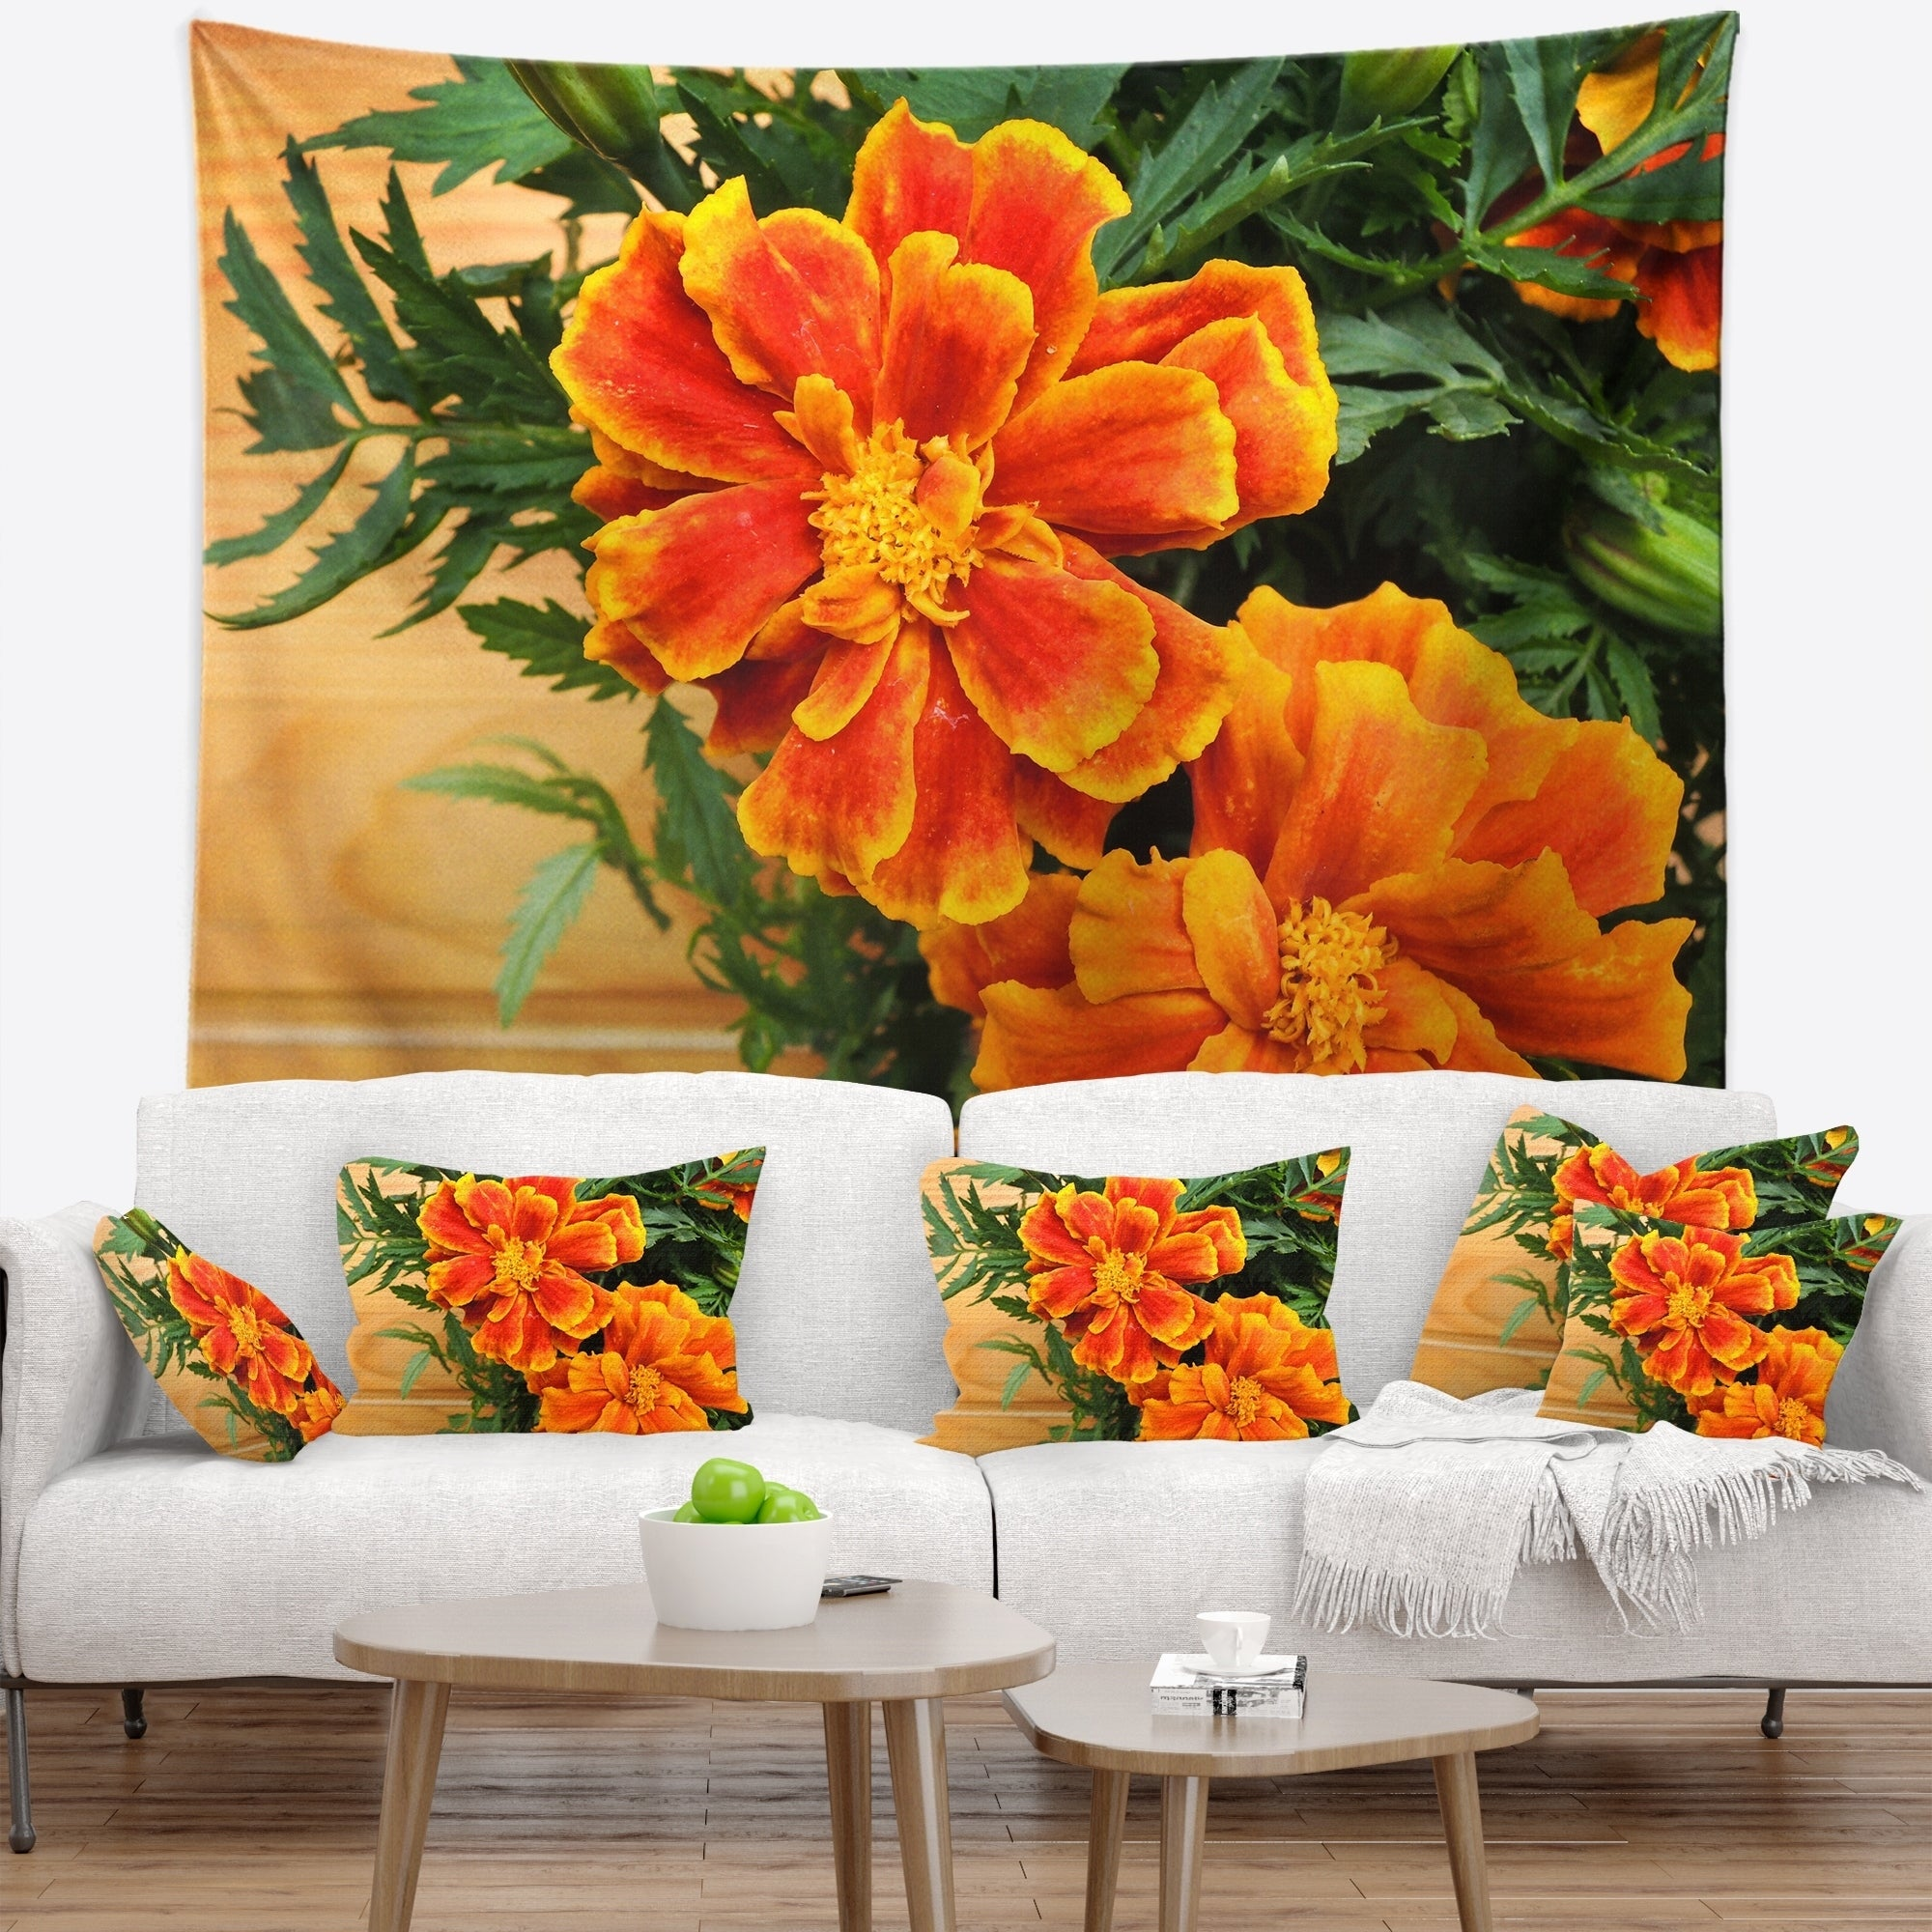 Designart Marigold Flower On Wooden Background Floral Wall Tapestry Overstock 20928889